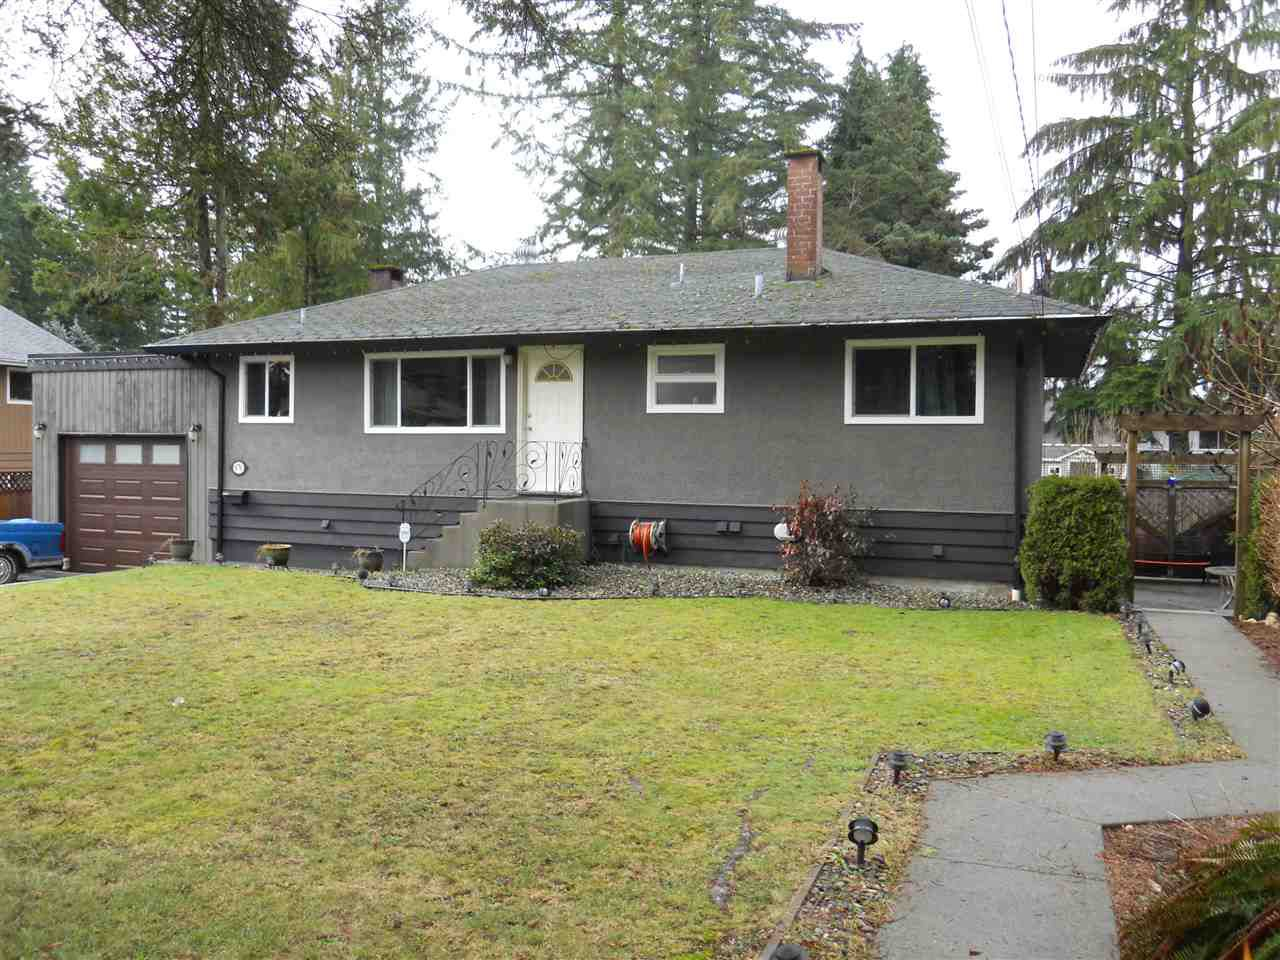 Main Photo: 670 SCHOOLHOUSE Street in Coquitlam: Central Coquitlam House for sale : MLS®# R2137061